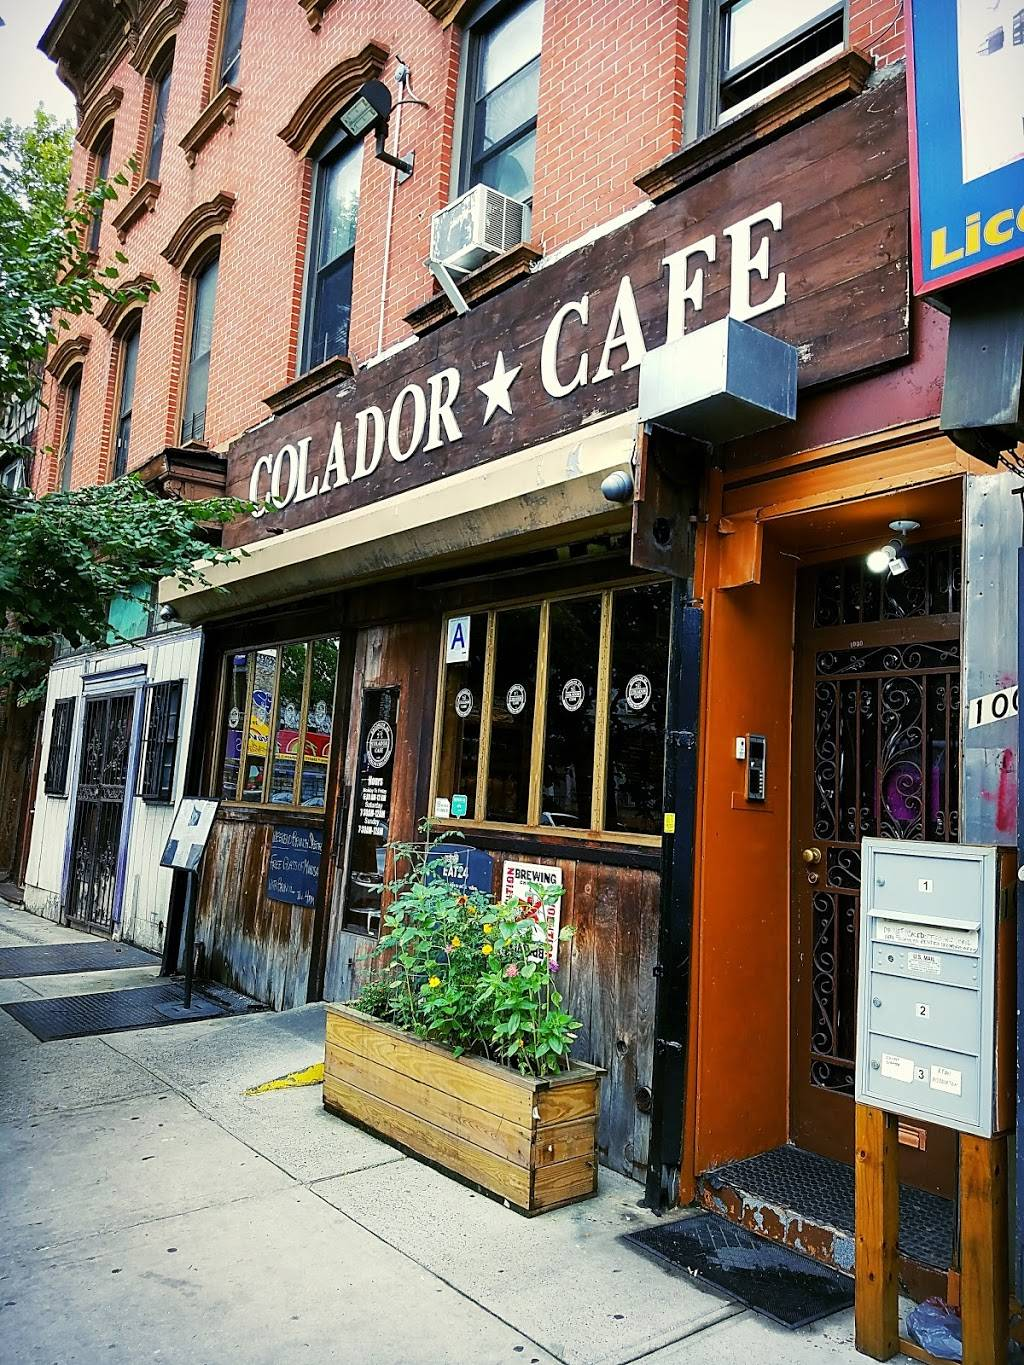 Colador Cafe | cafe | 1000 Bedford Ave, Brooklyn, NY 11205, USA | 7183991933 OR +1 718-399-1933